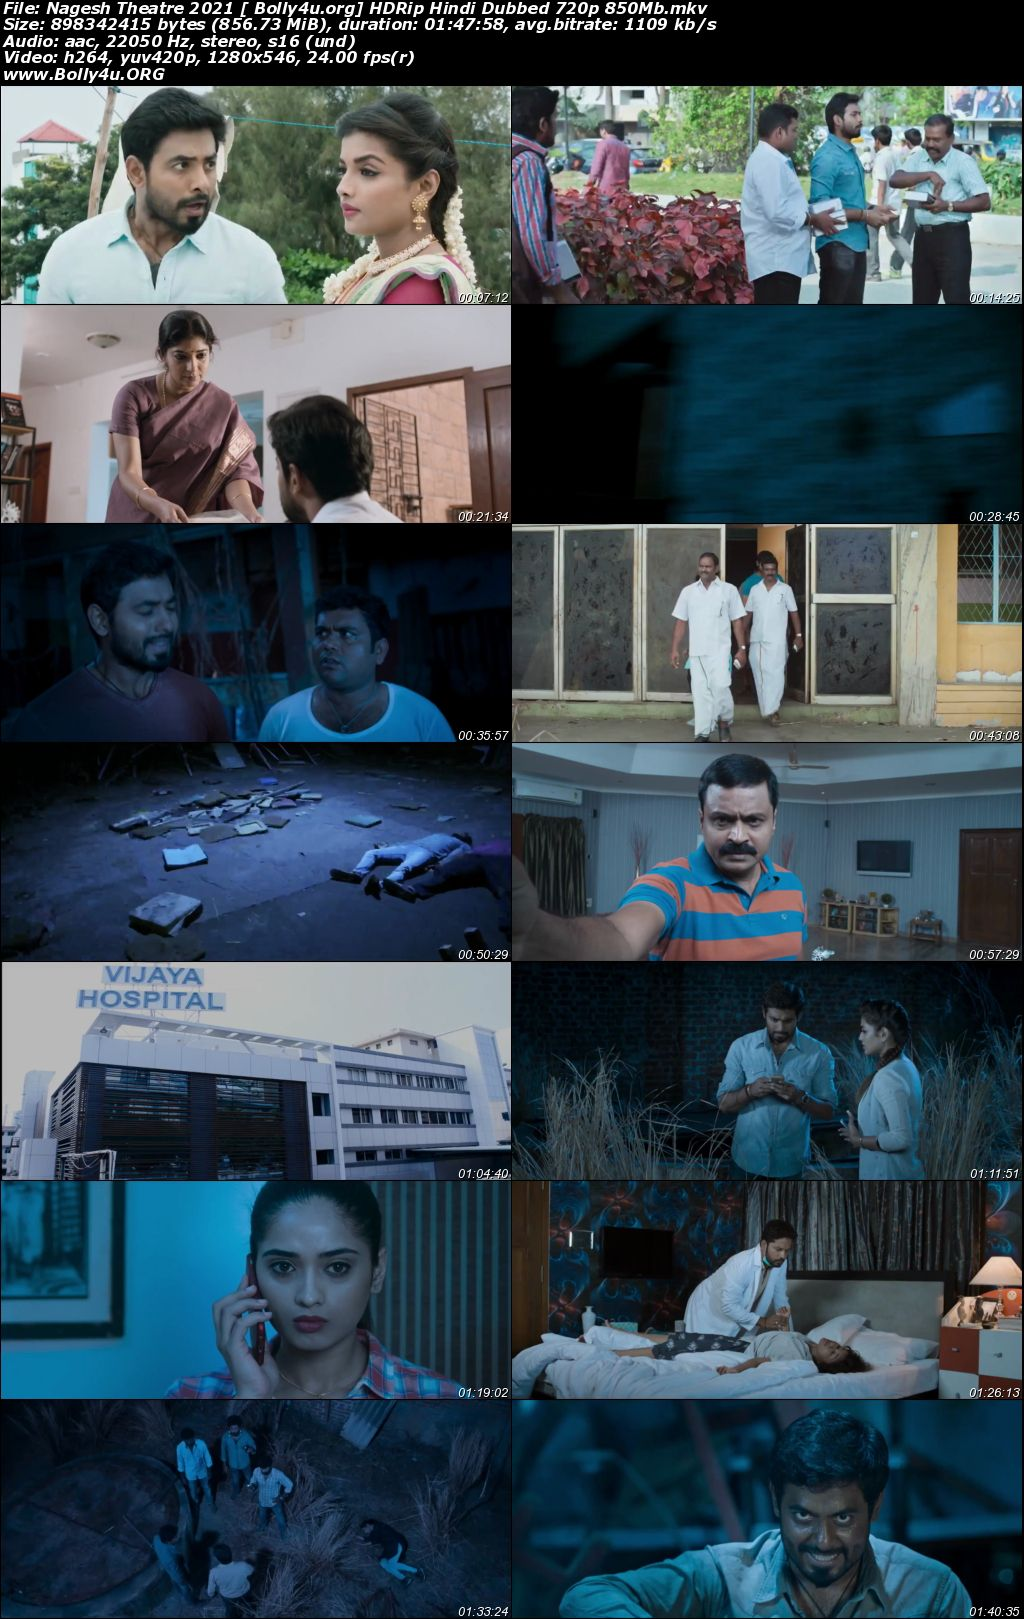 Nagesh Theatre 2021 HDRip 350MB Hindi Dubbed 480p Download